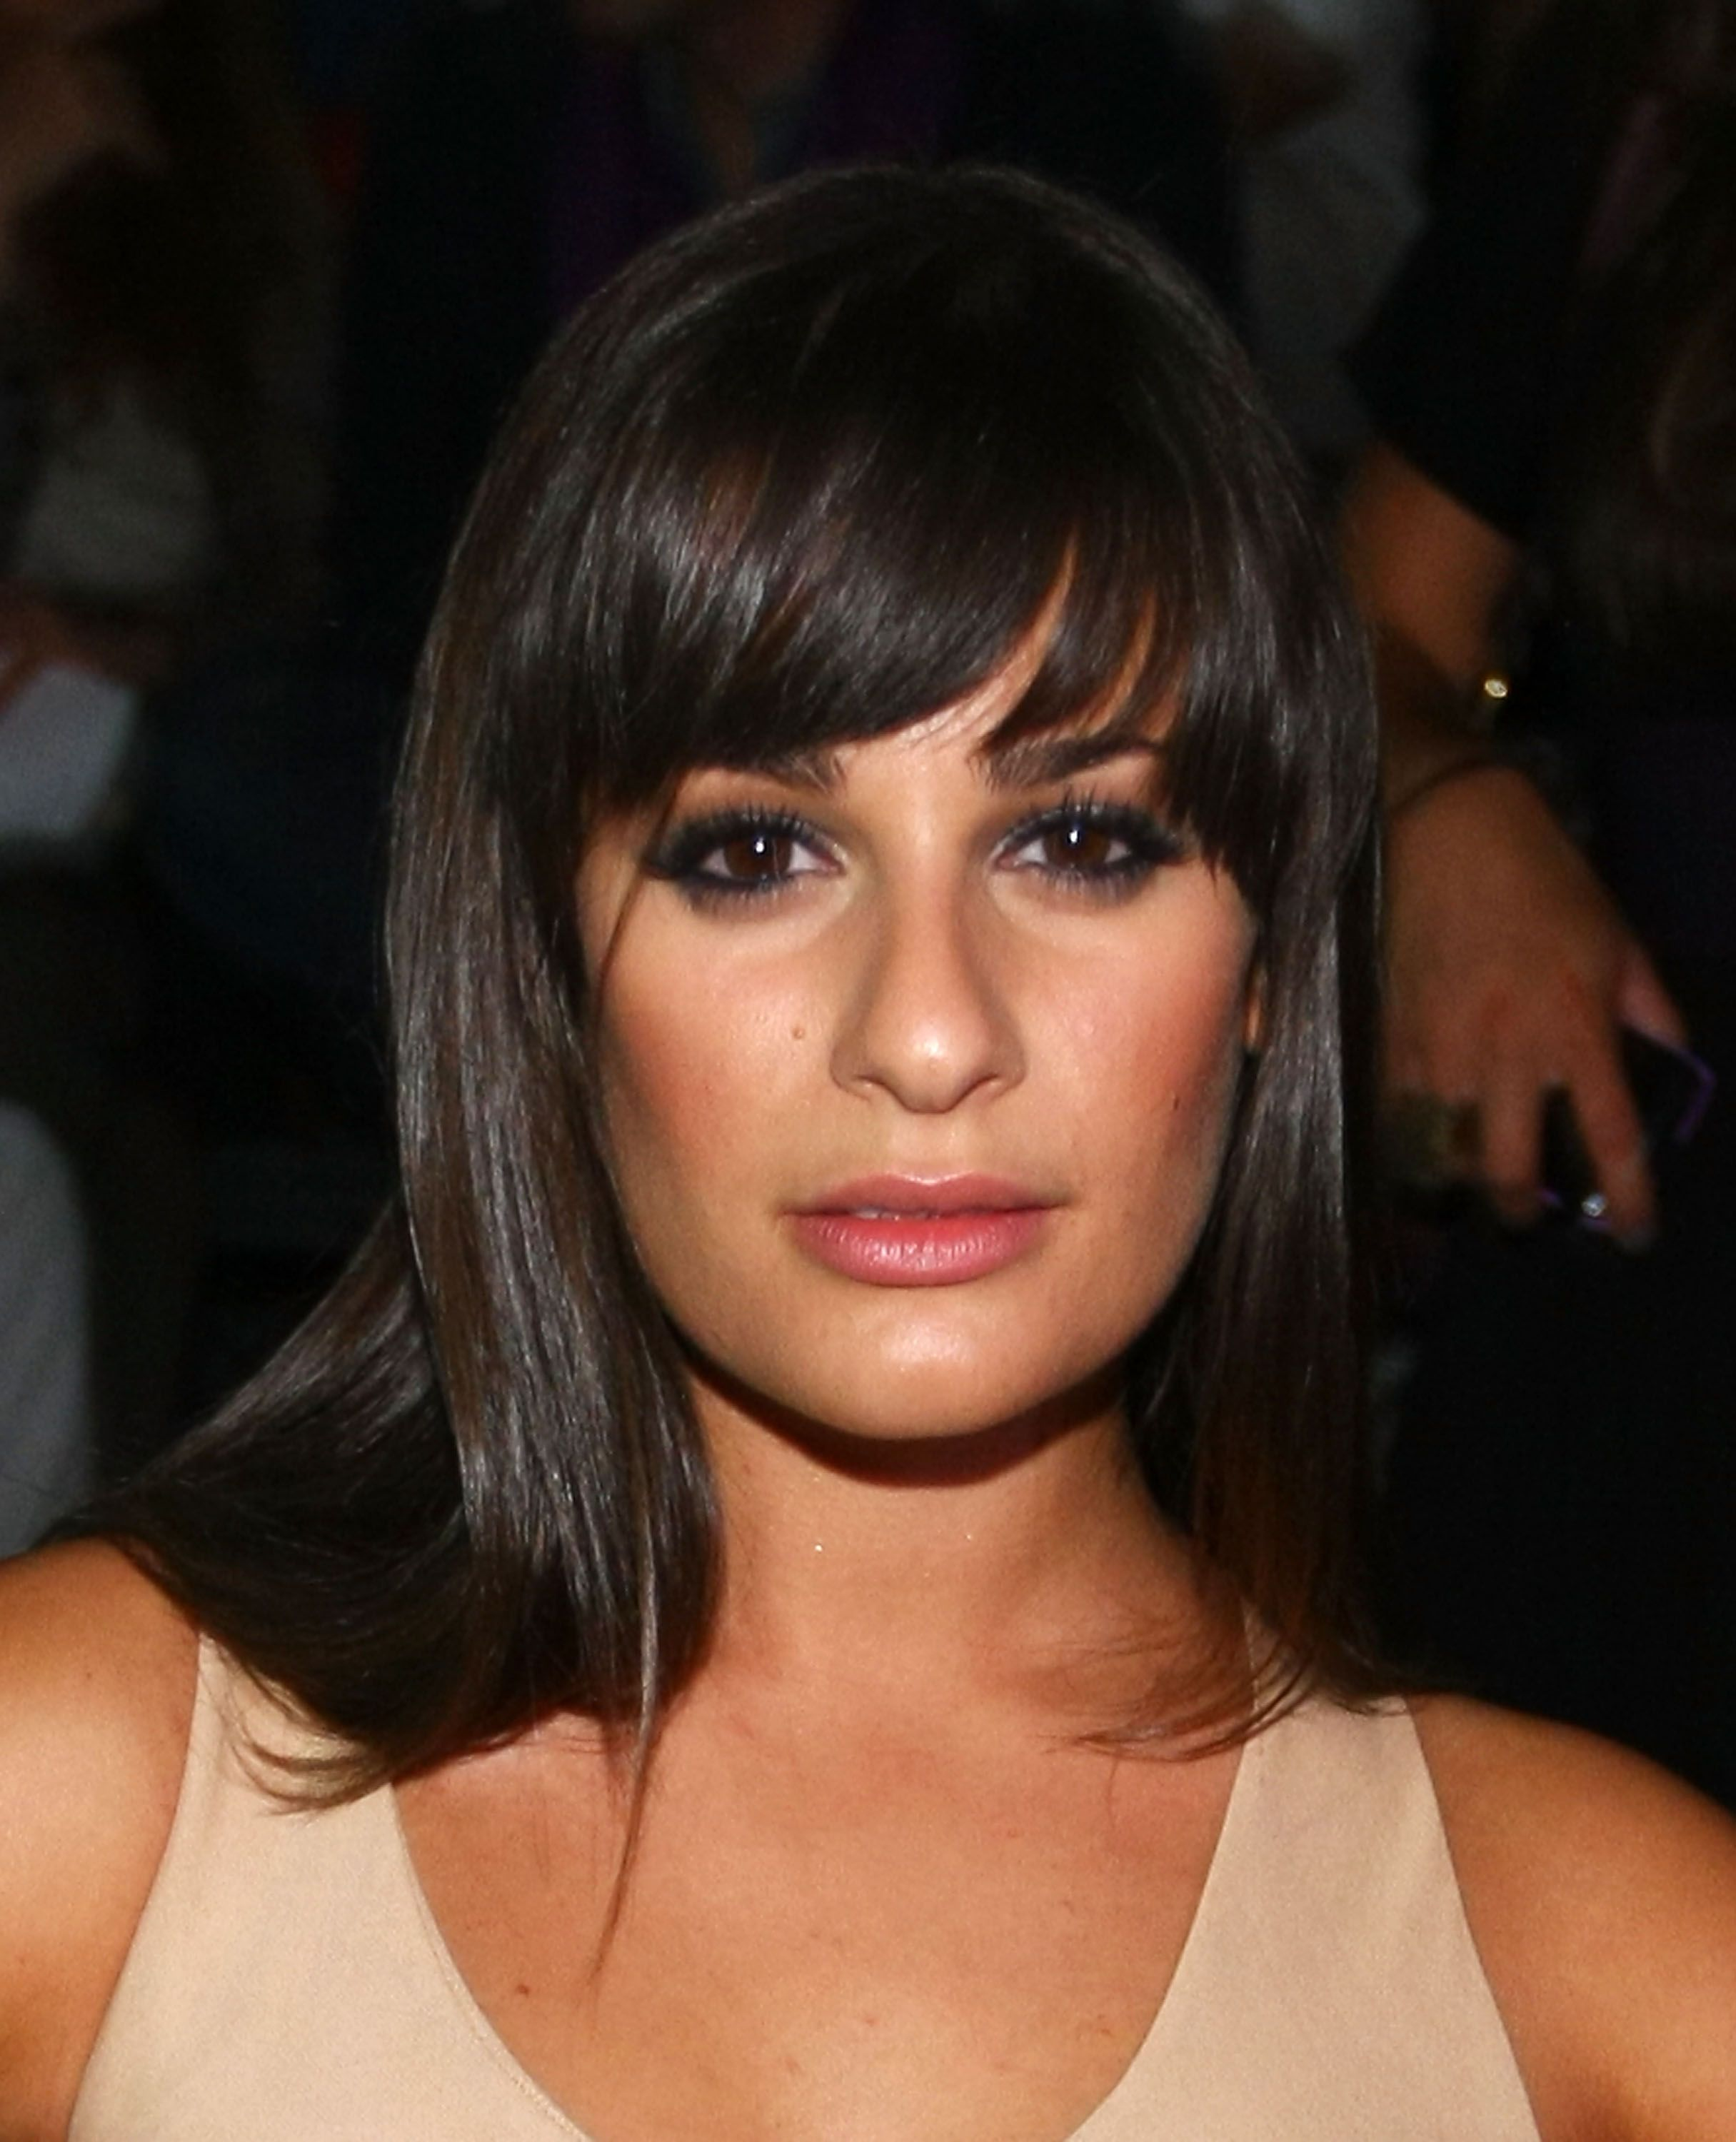 Lea Michele was once rude to a photographer / Getty Images